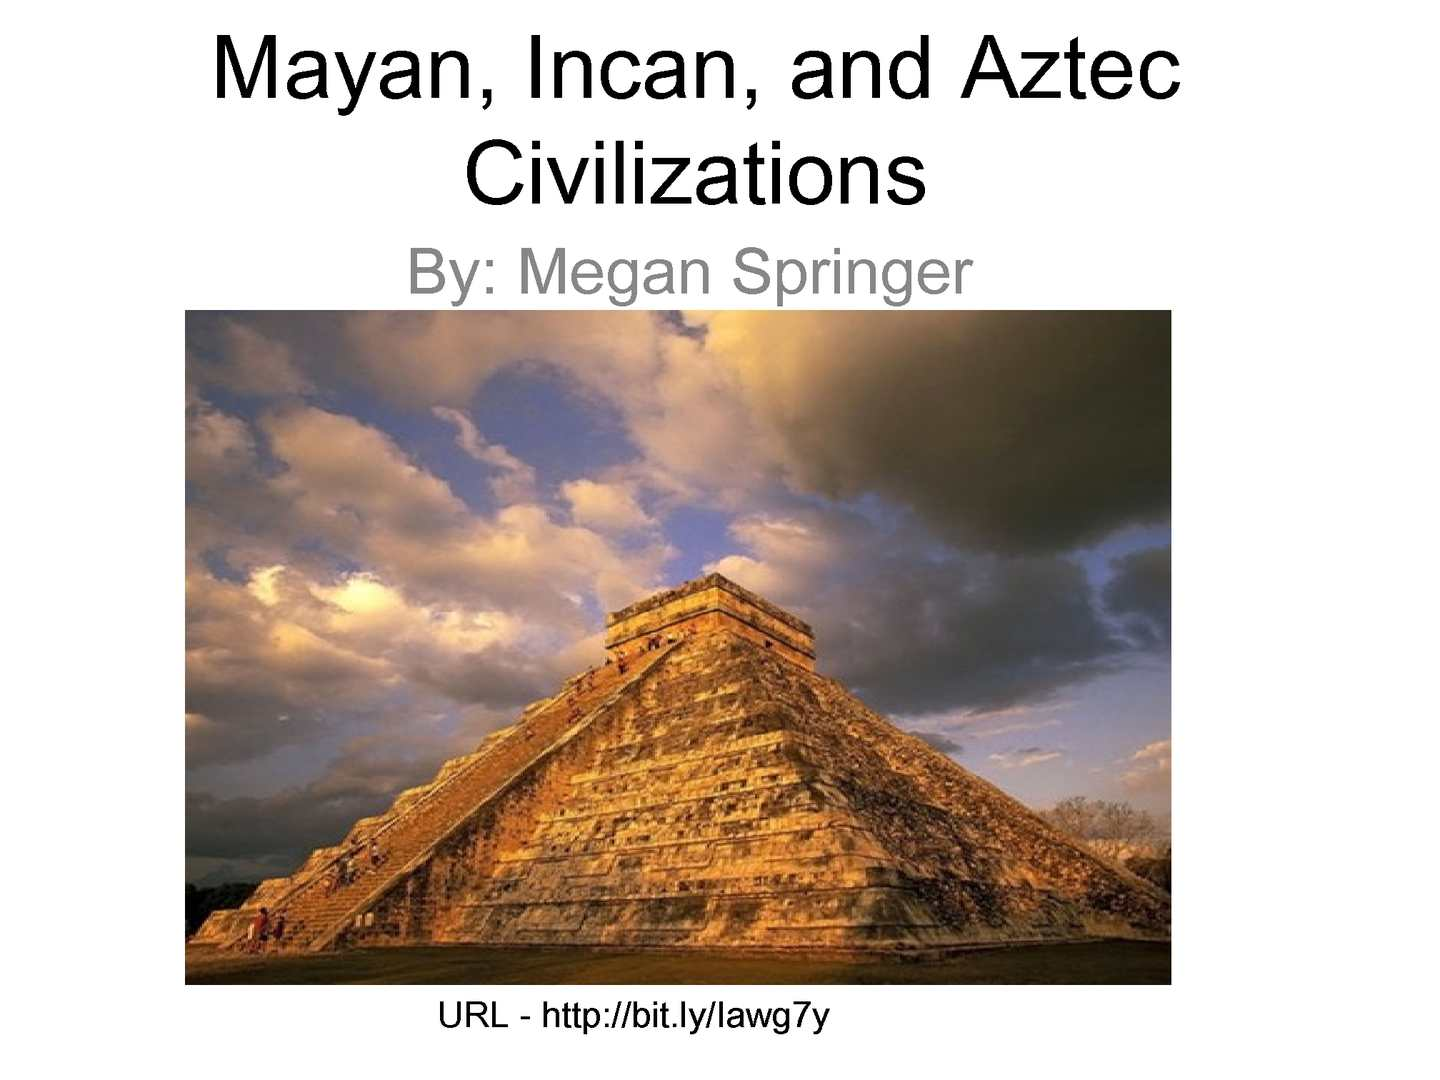 incan and aztec The olmec, mayan, inca, and the aztec are ancient civilization in the western hemisphere their pyramids aren't as famous egypt, but just as interesting, and are made of stone.